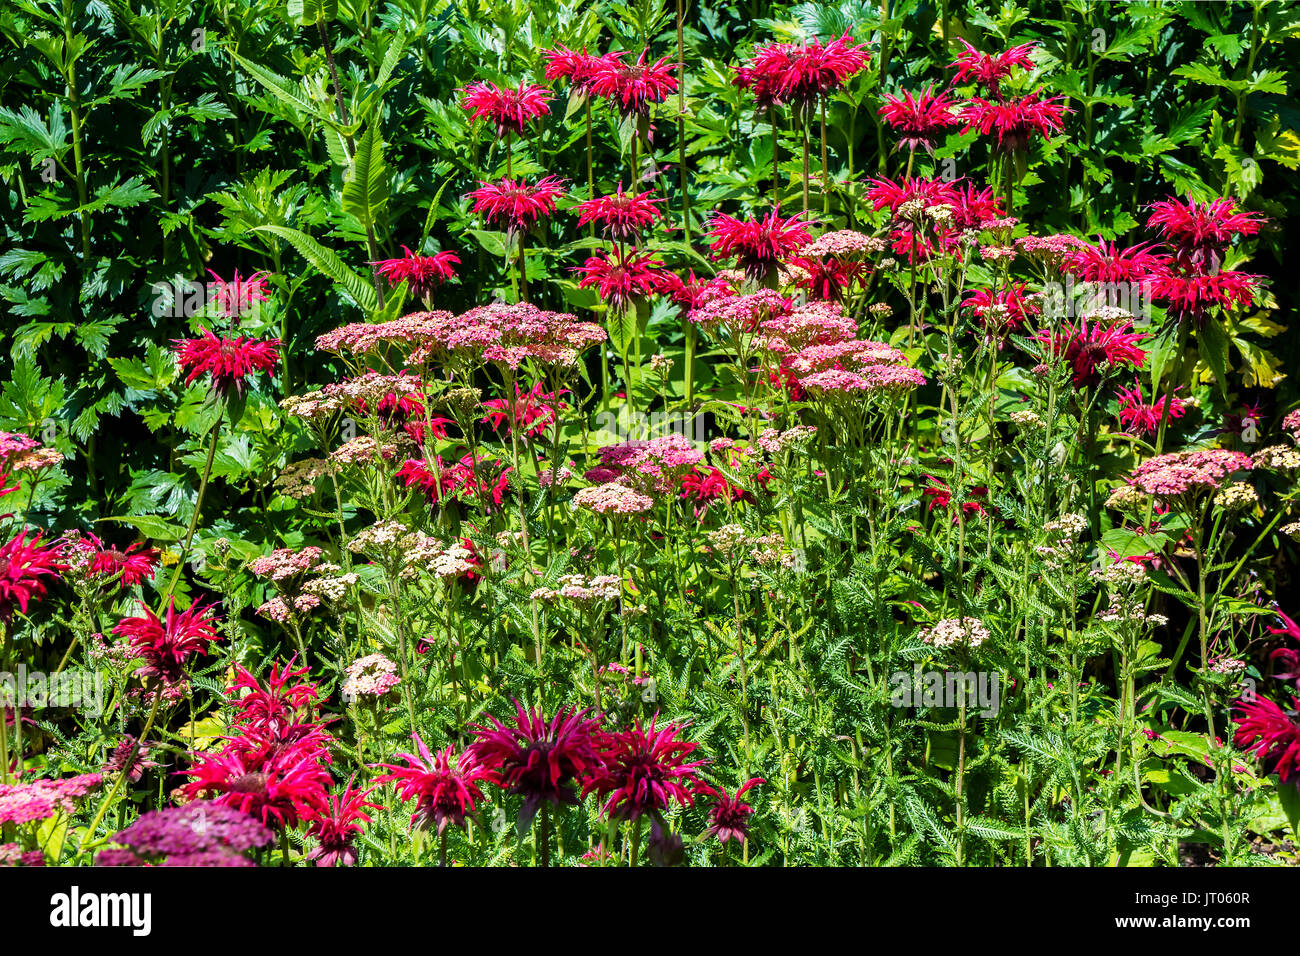 Dark Pink Monarda and Achillea flowers in a herbaceous border. - Stock Image